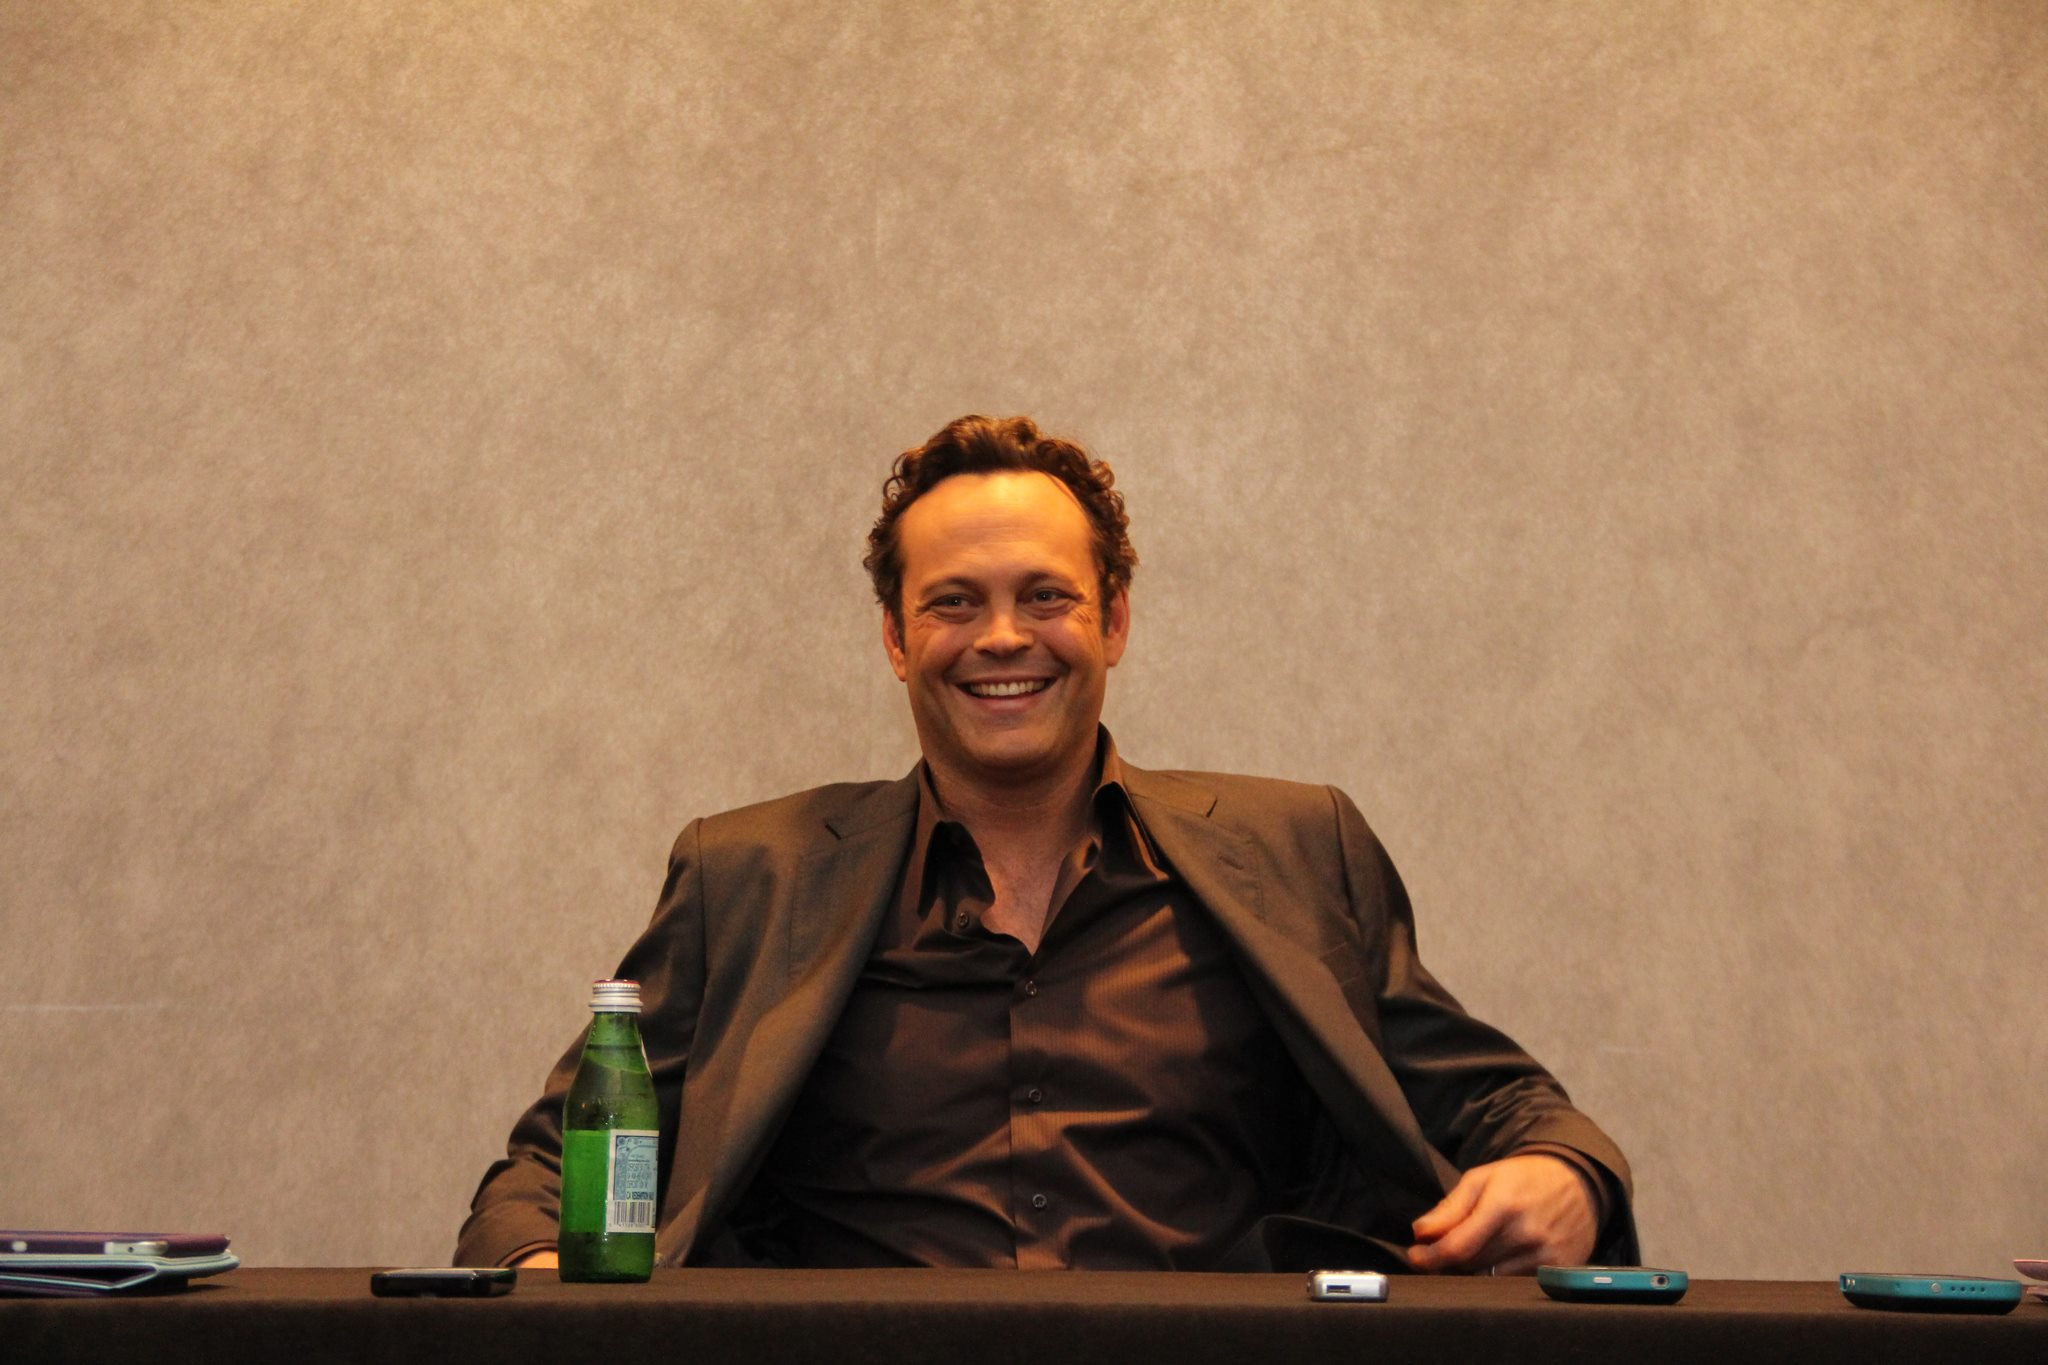 from Rogelio vince vaughn very gay